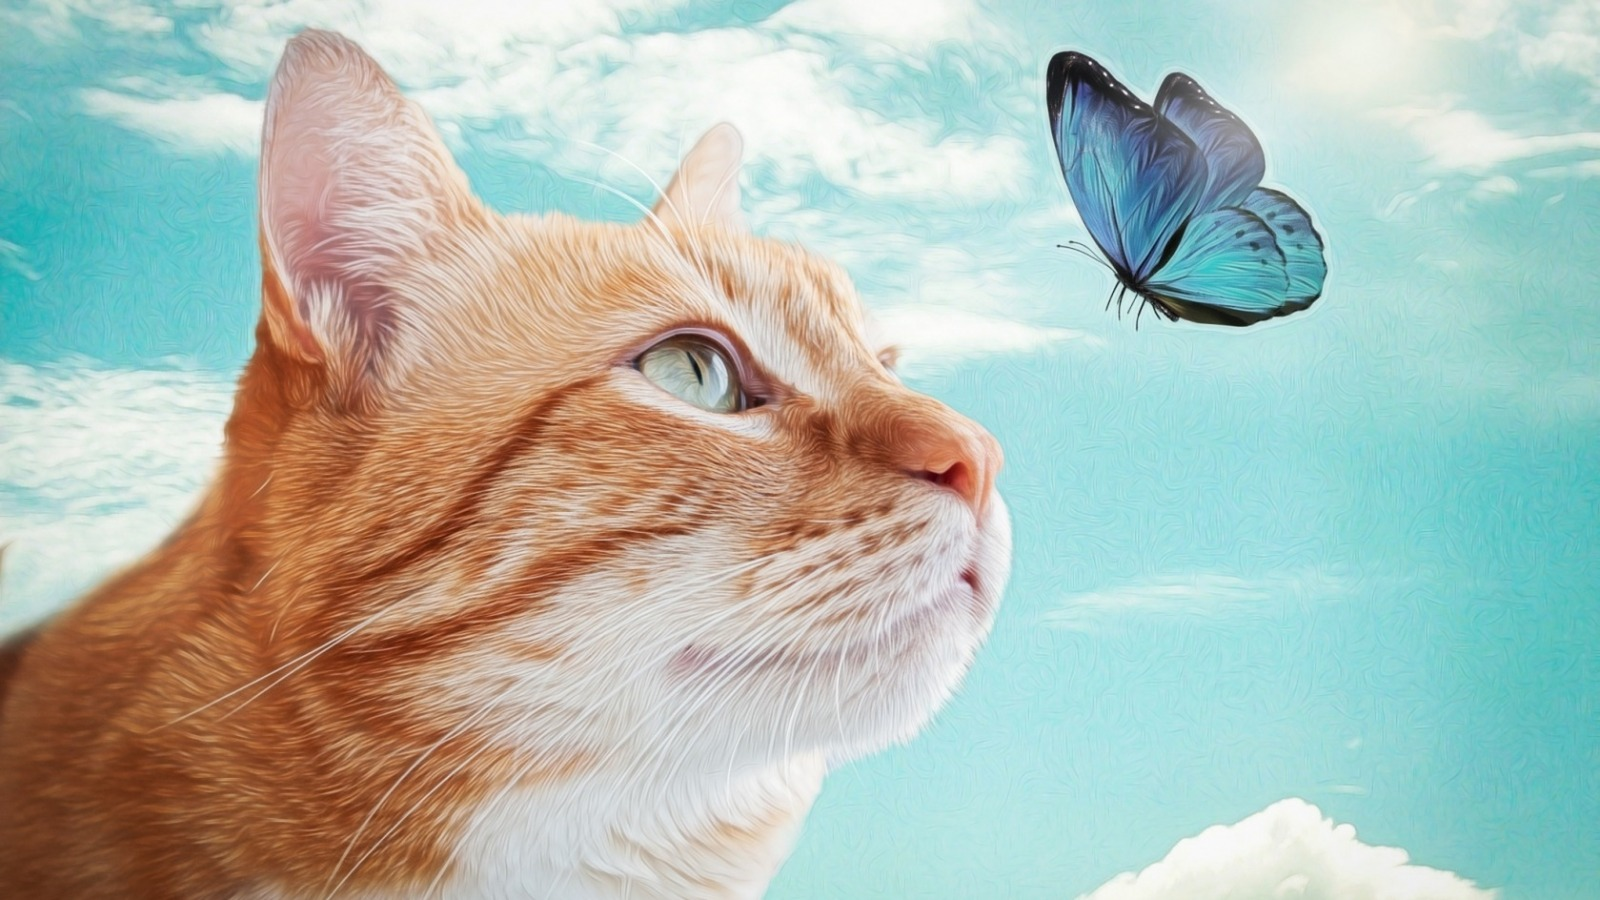 Cats Images Cat And Butterfly Hd Wallpaper And Background Photos